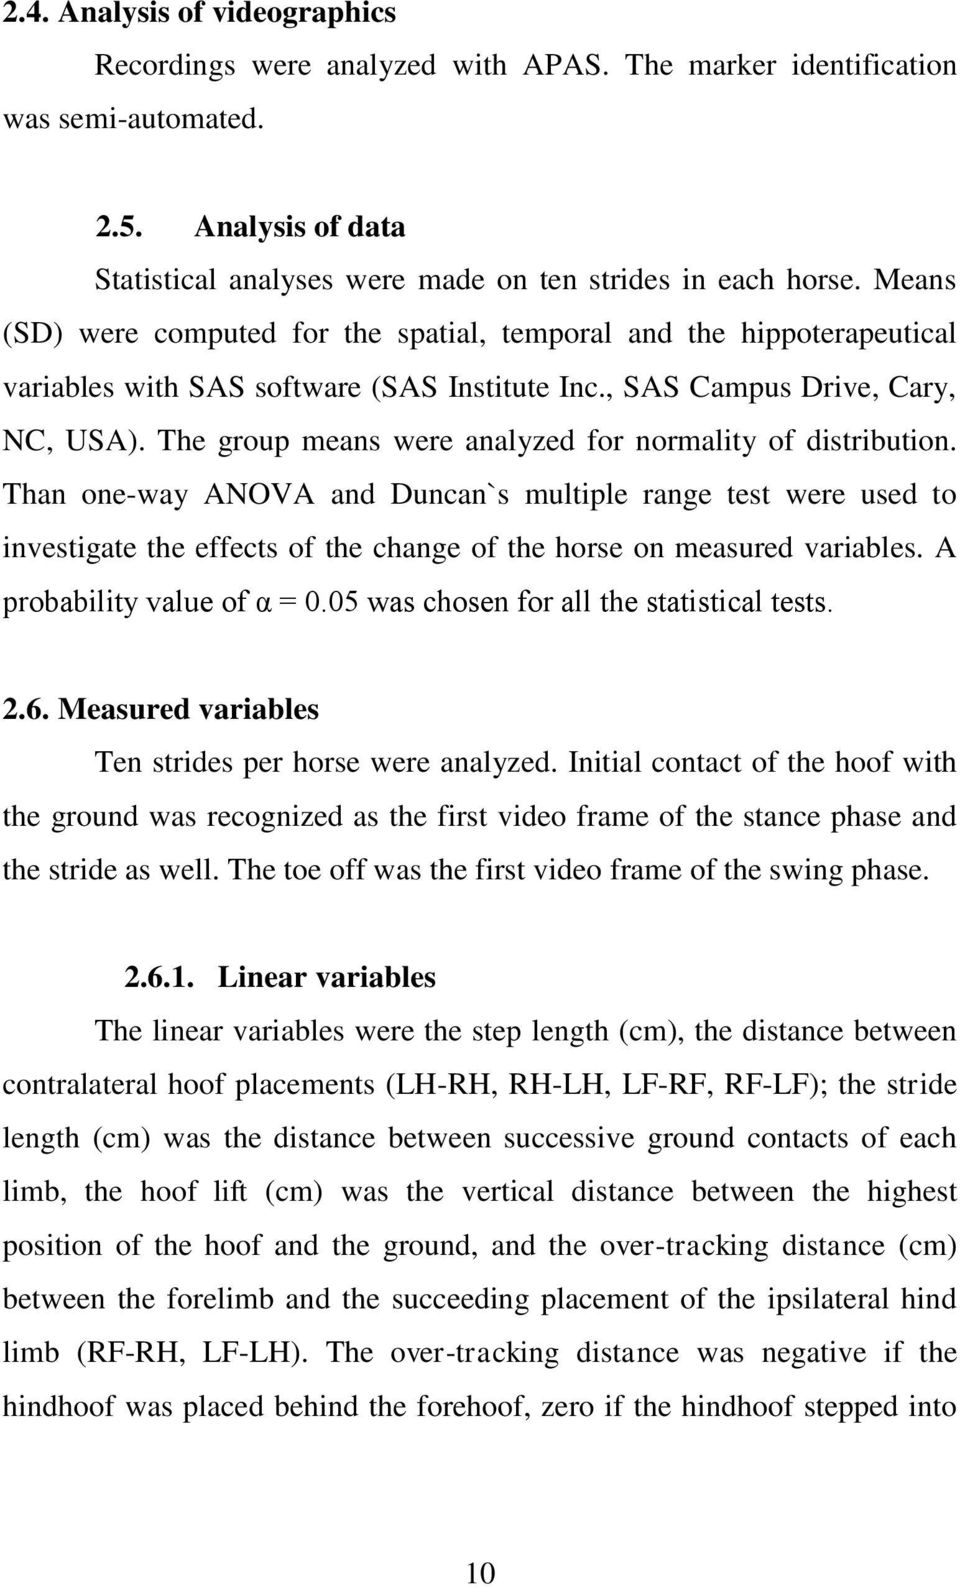 The group means were analyzed for normality of distribution. Than one-way ANOVA and Duncan`s multiple range test were used to investigate the effects of the change of the horse on measured variables.